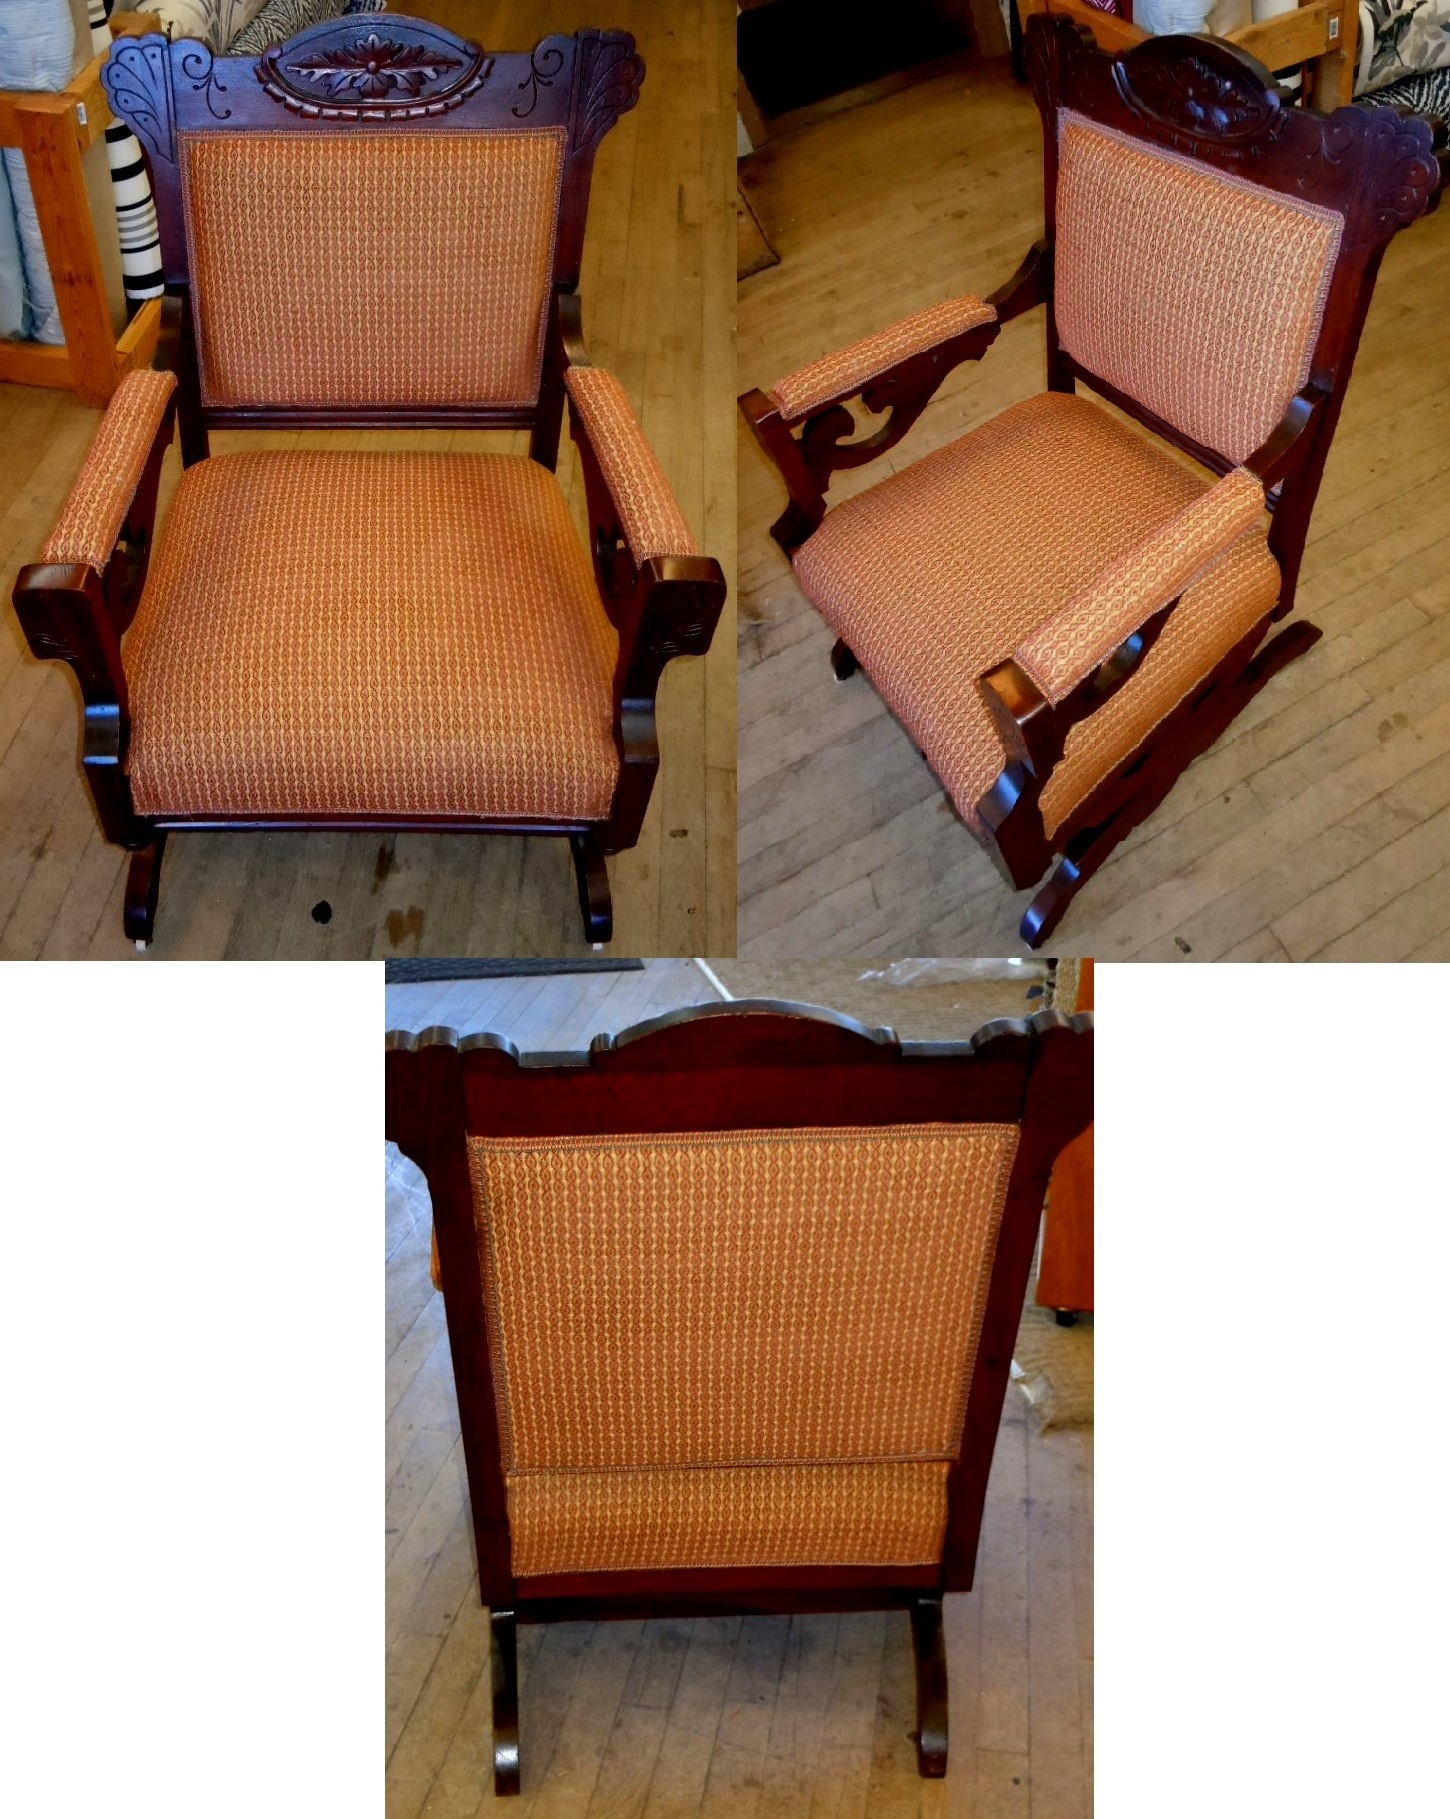 Schindler 39 s fabrics and upholstery shop coupons near me in for Furniture upholstery near me